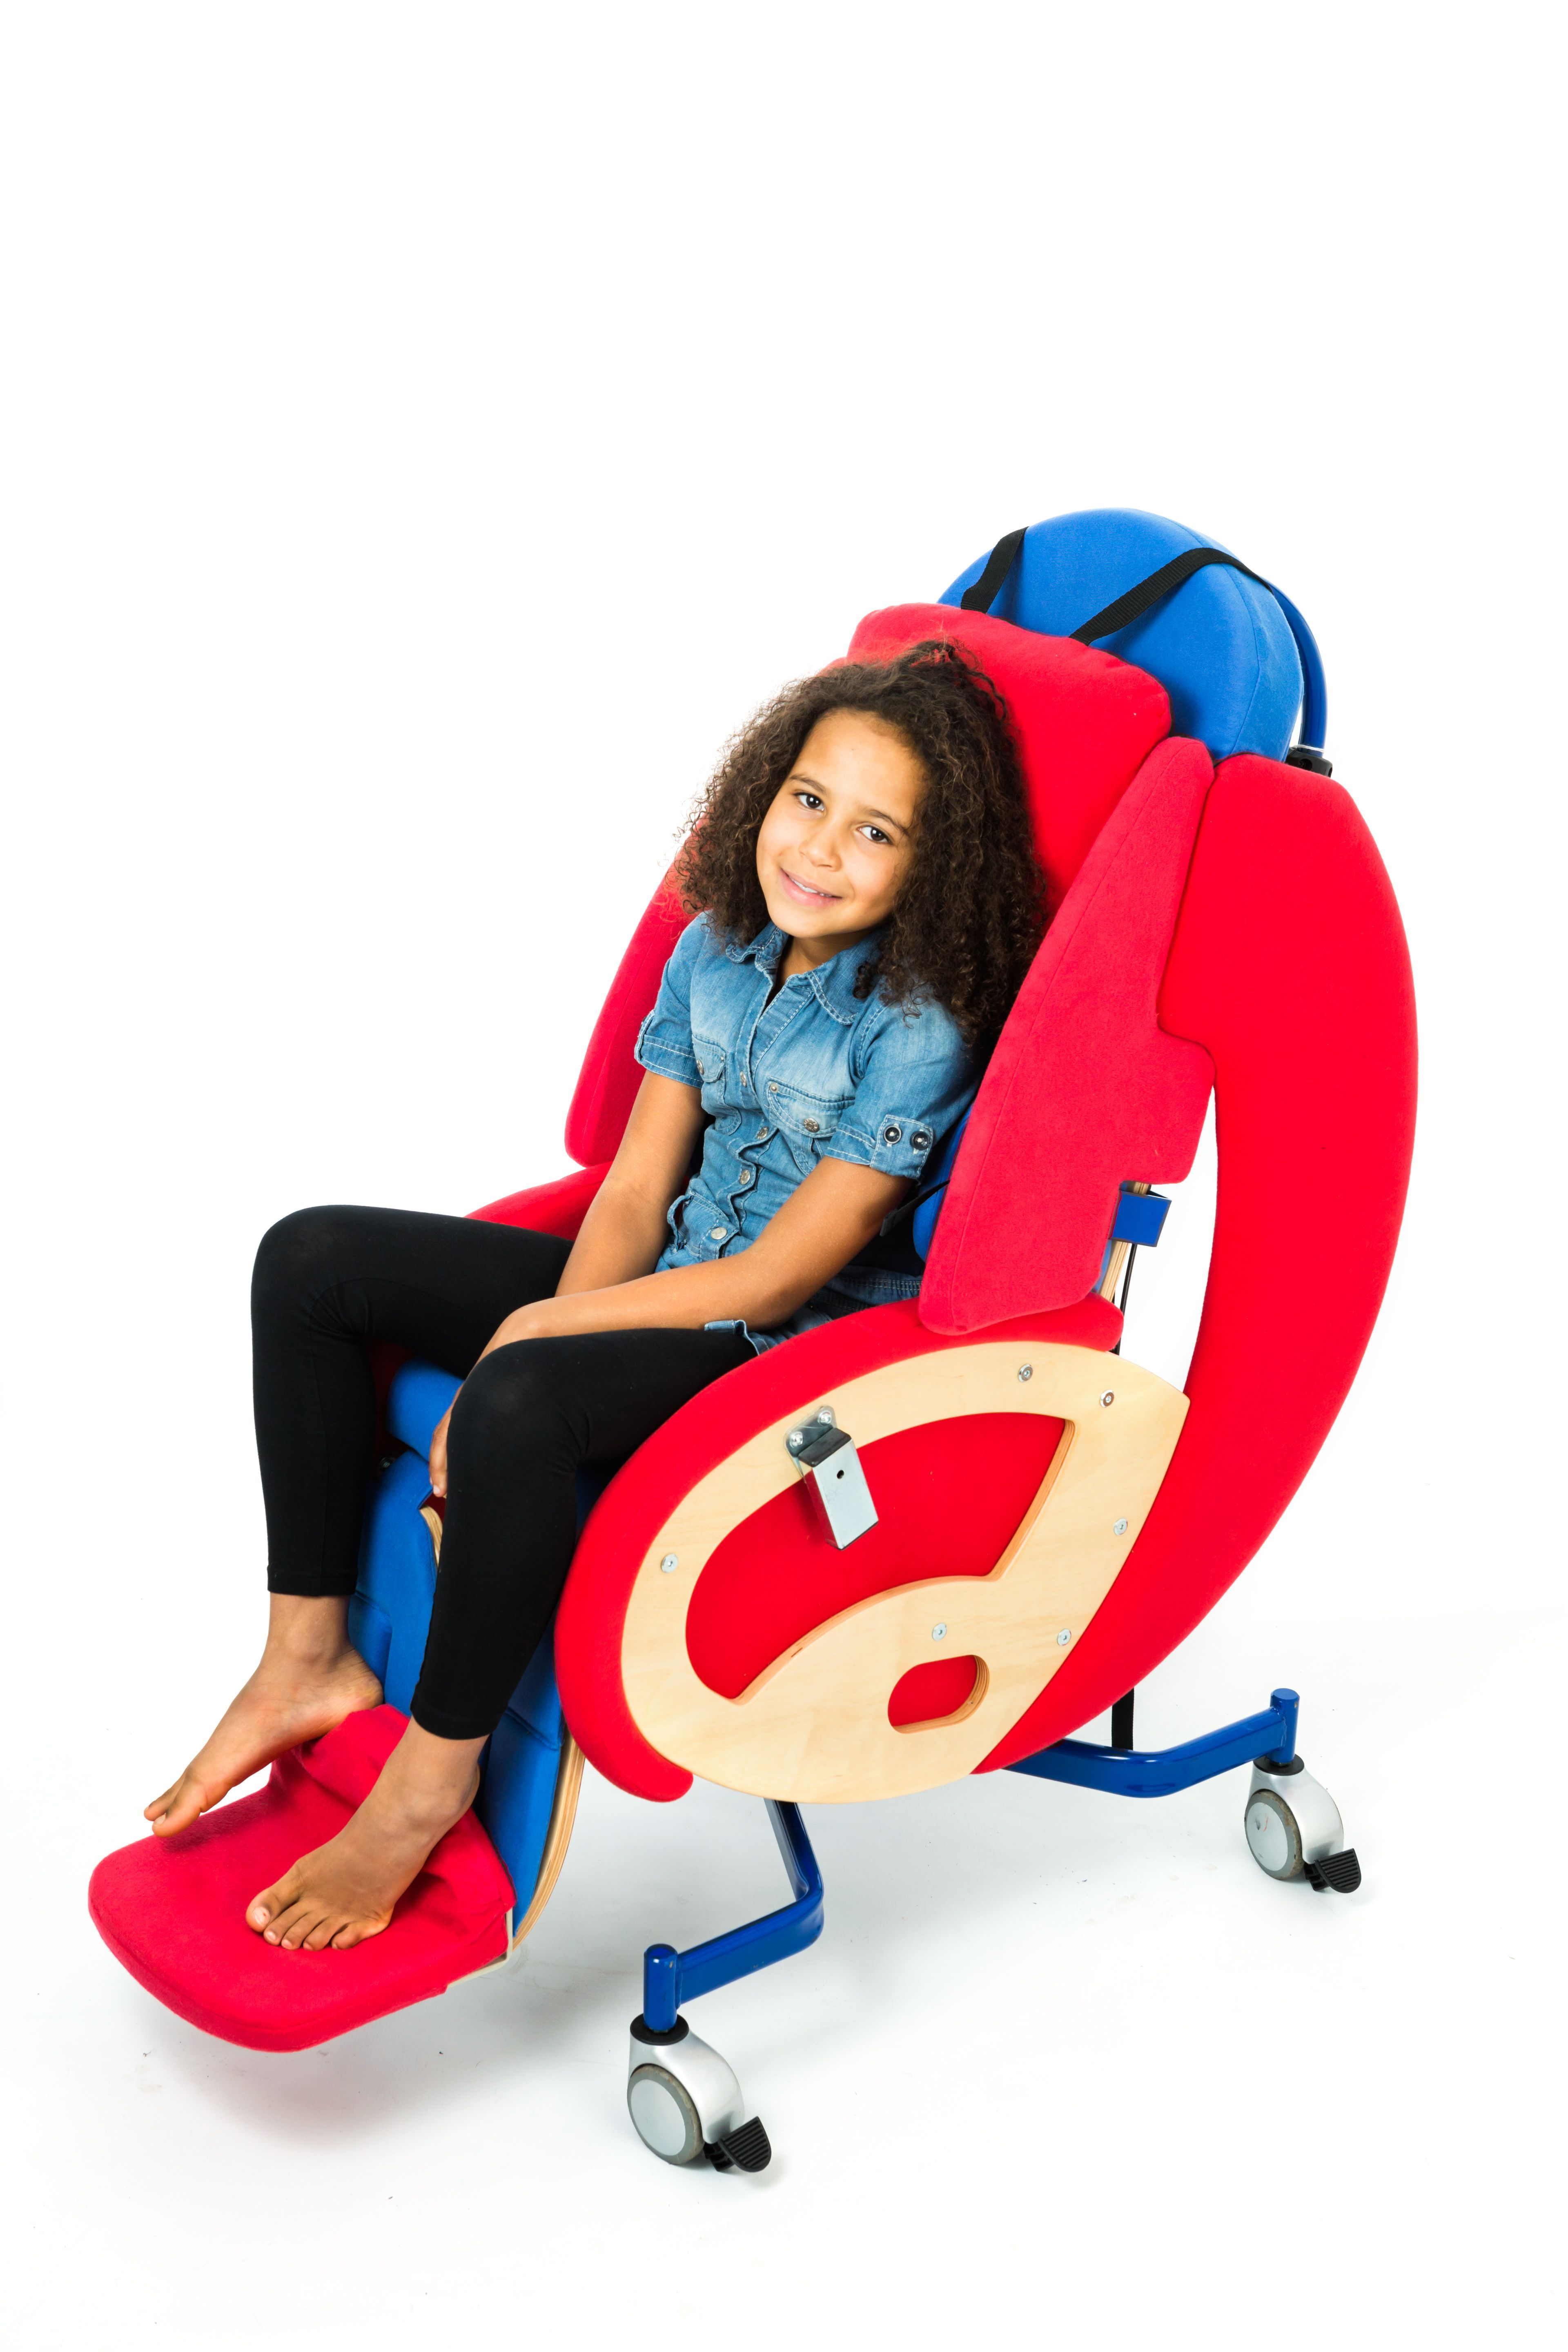 Toddler Soft Chairs The Huggle The Comforting And Flexible Relaxation Chair For